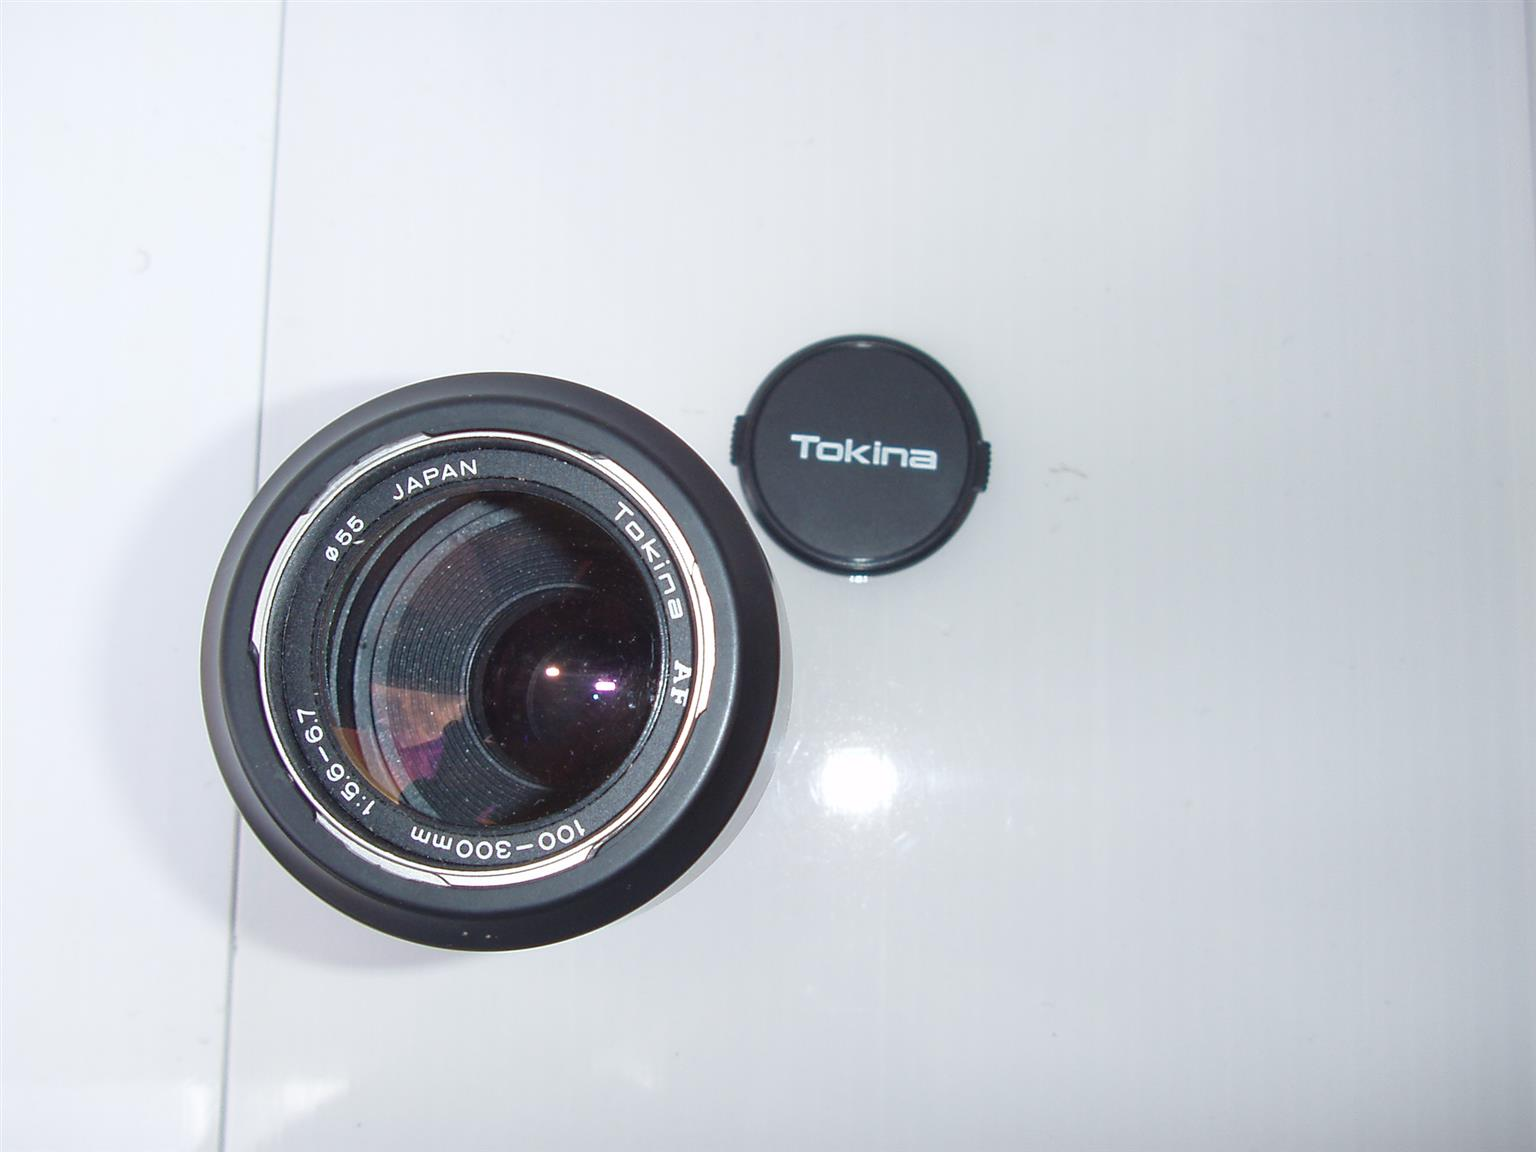 Tokina AF 100-300mm 1:5.6 - 6.7 Lens - in excellent condition